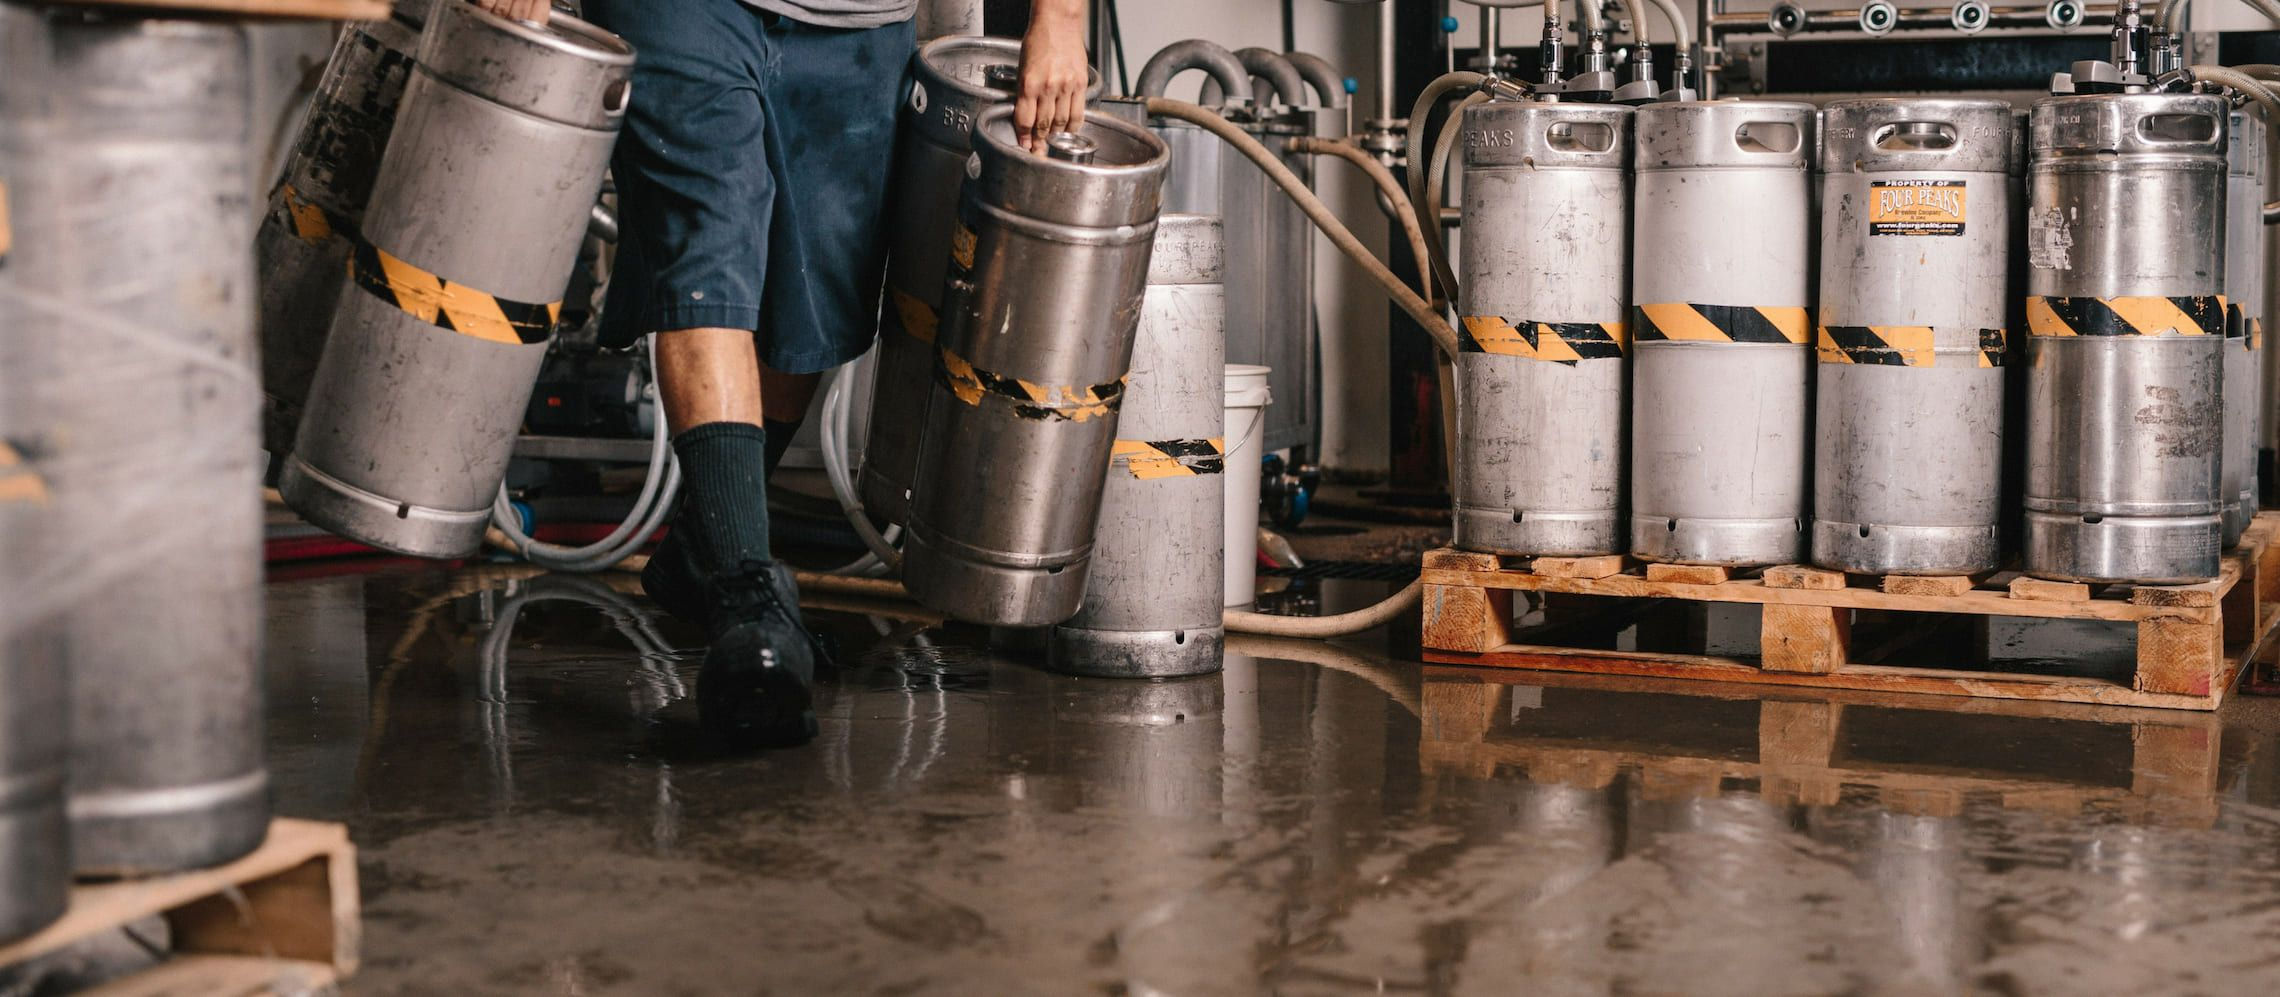 Photo for: Beer 101: The Fundamental Steps of Brewing Beer